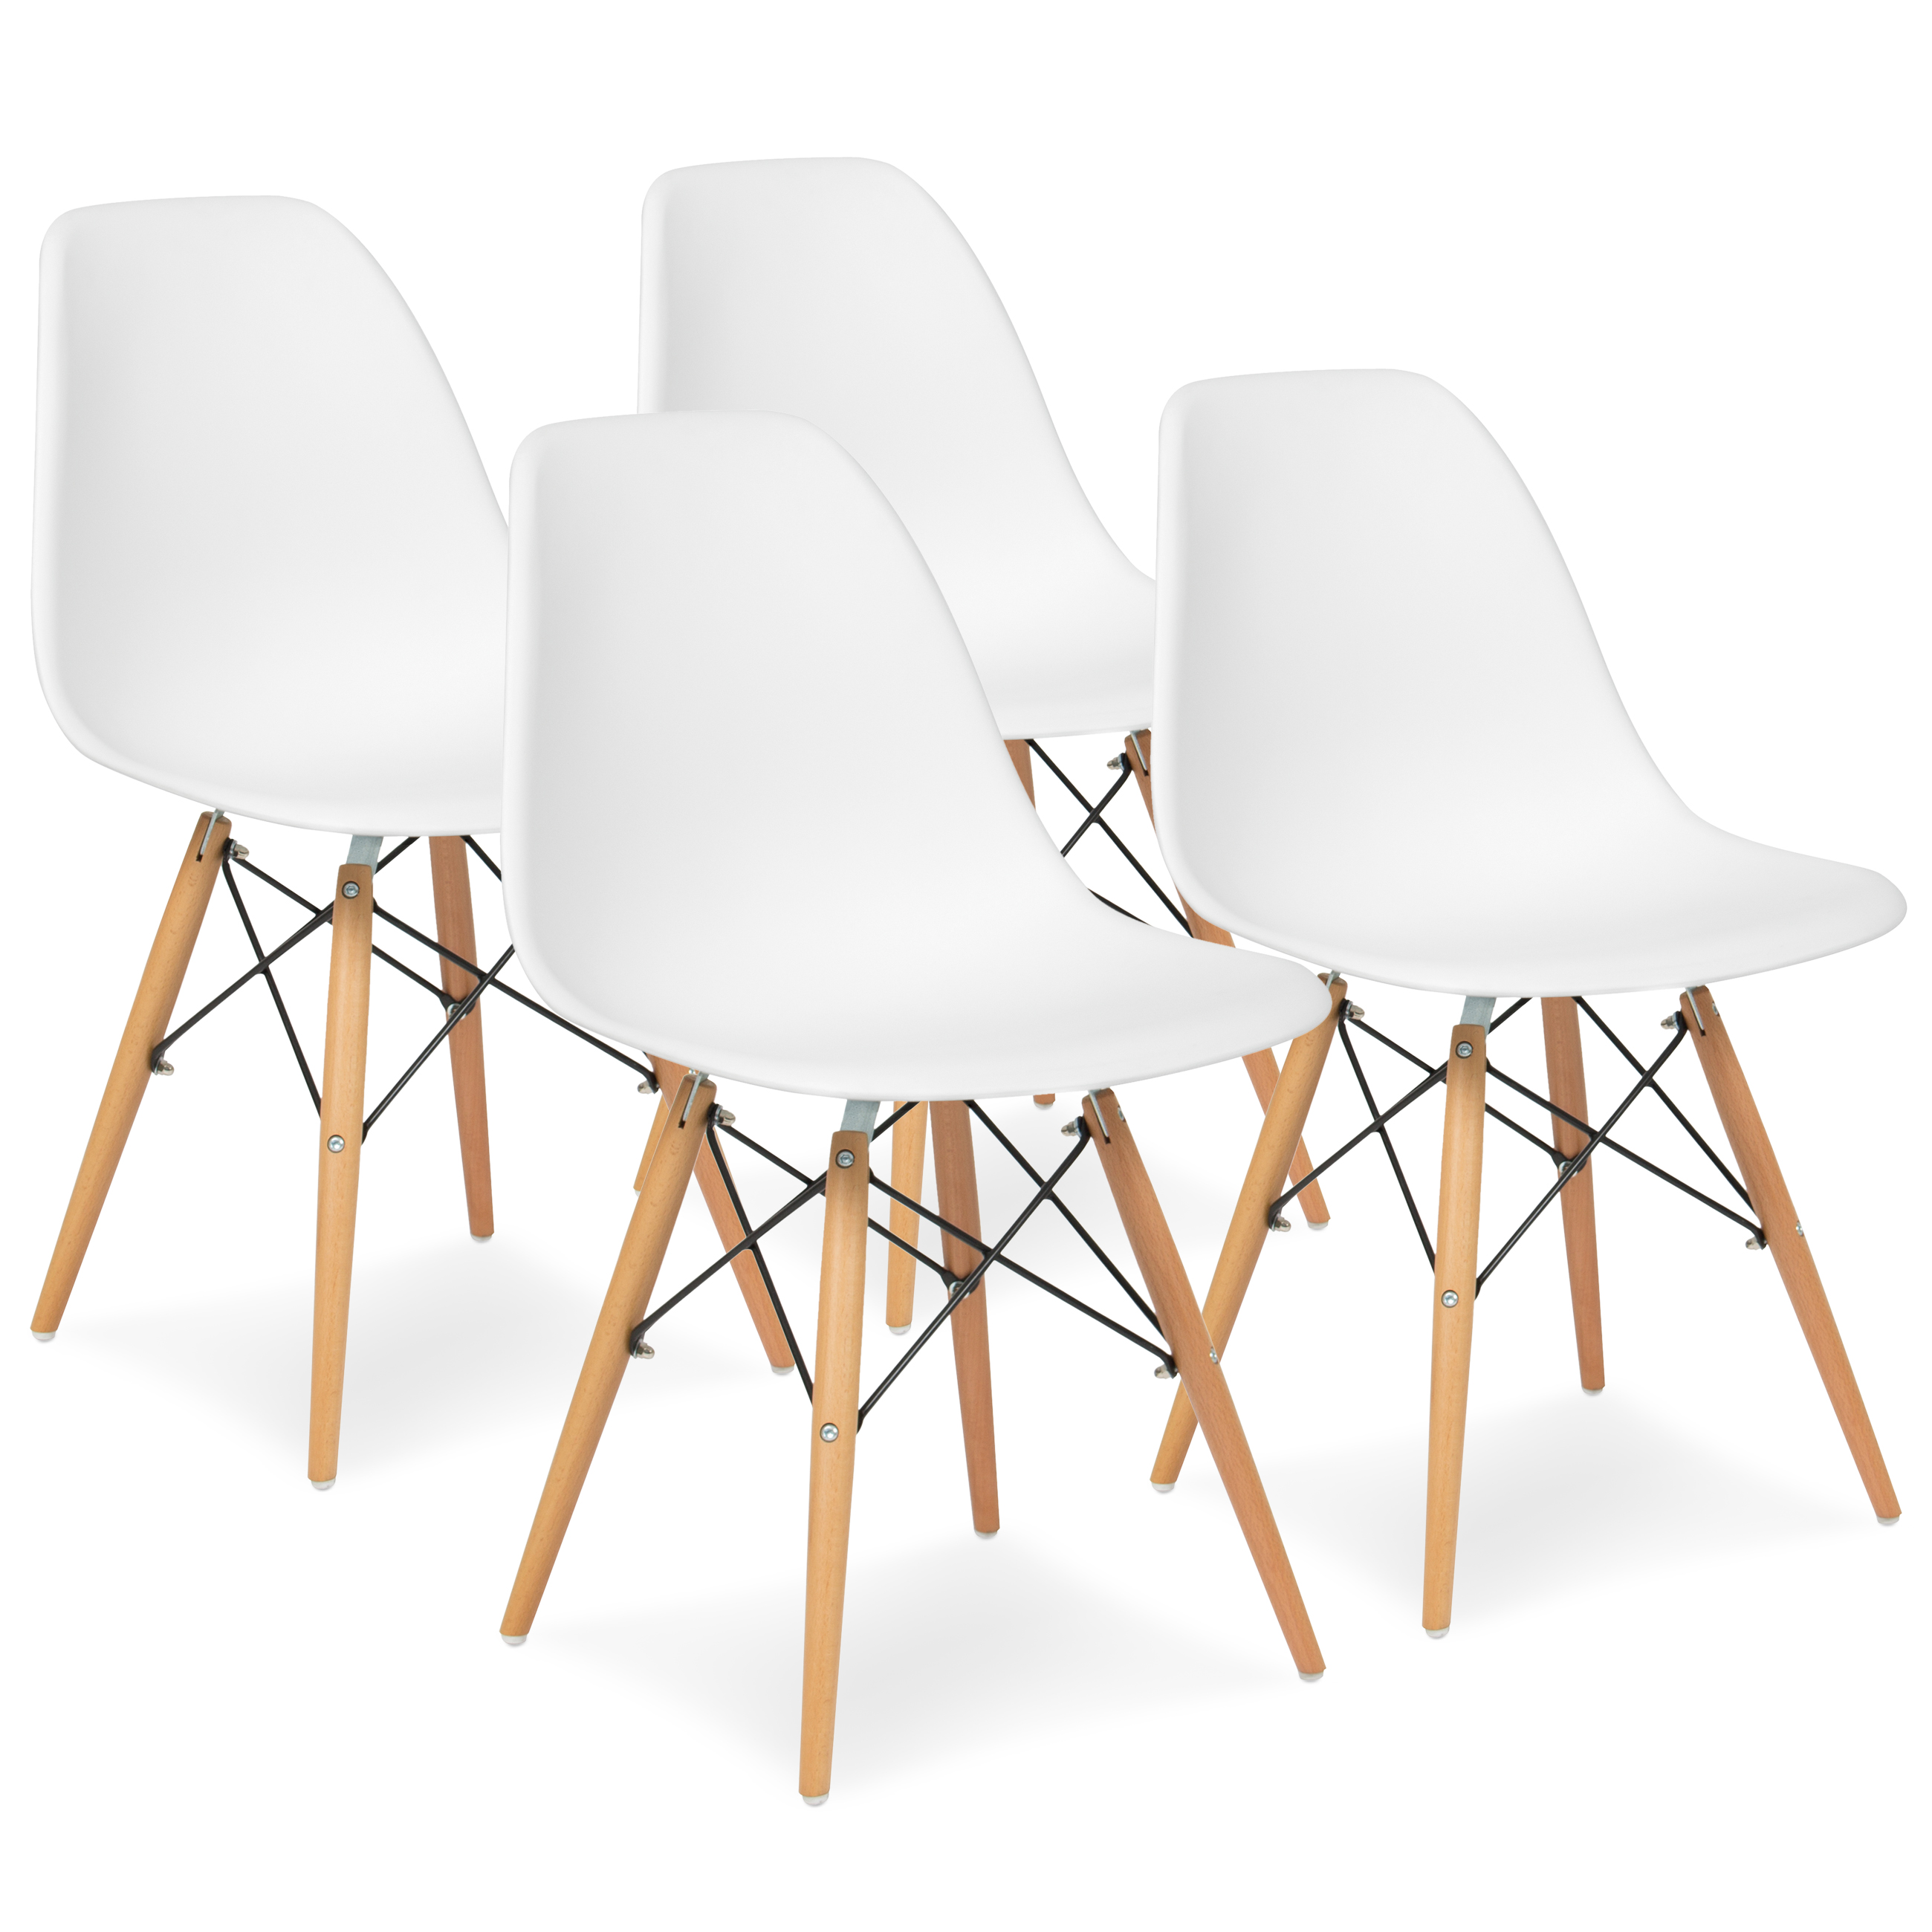 Best Choice Products Set of 4 Mid Century Modern Eames Style Dining